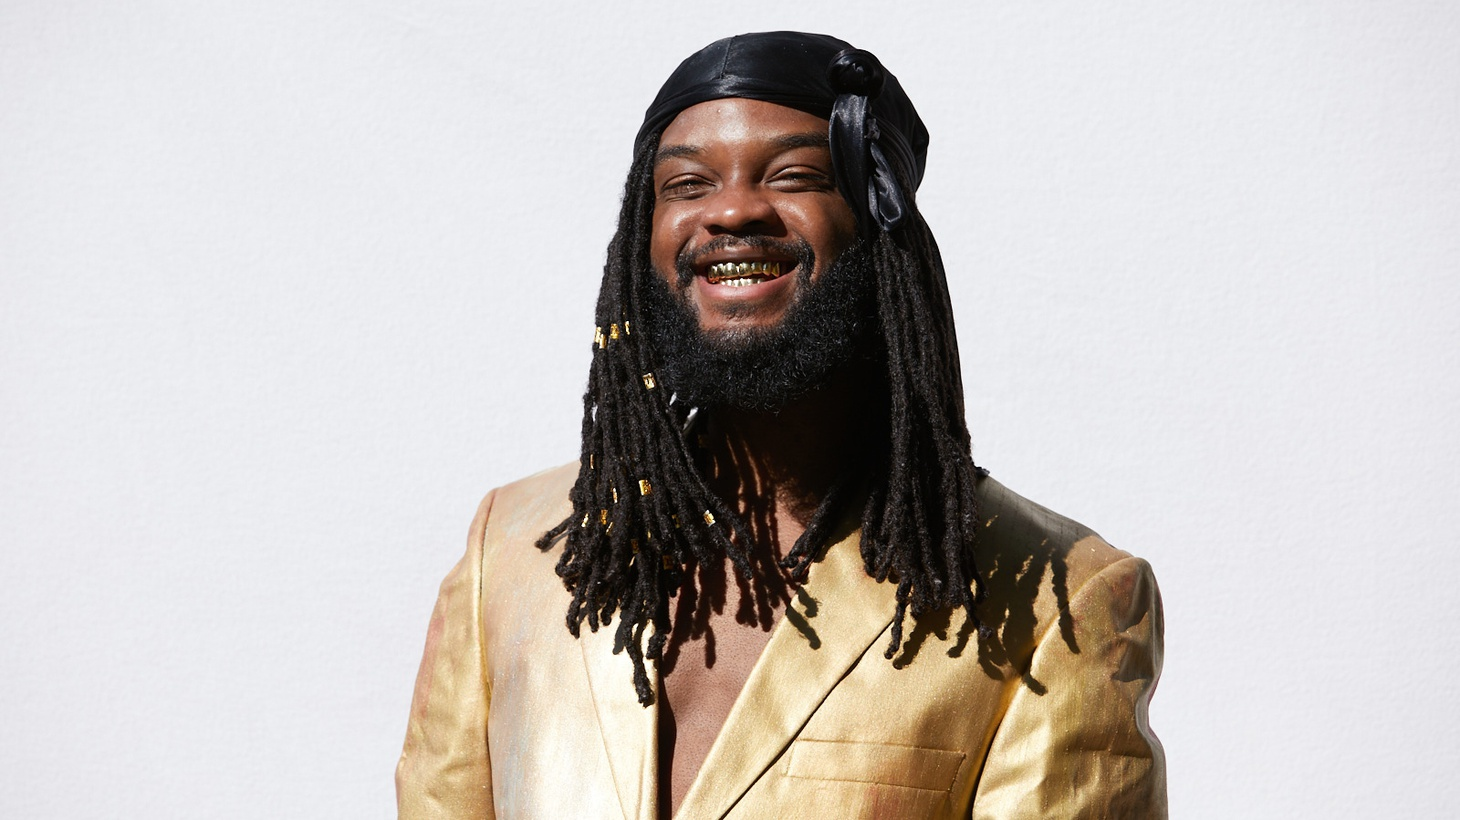 """Ghanaian-Australian musician Genesis Owusu has received giddy praise for his debut album """"Smiling with No Teeth,"""" and is already slated for many Top Ten listings for 2021. Think of """"Gold Chains"""" as a new kind of beat poetry."""